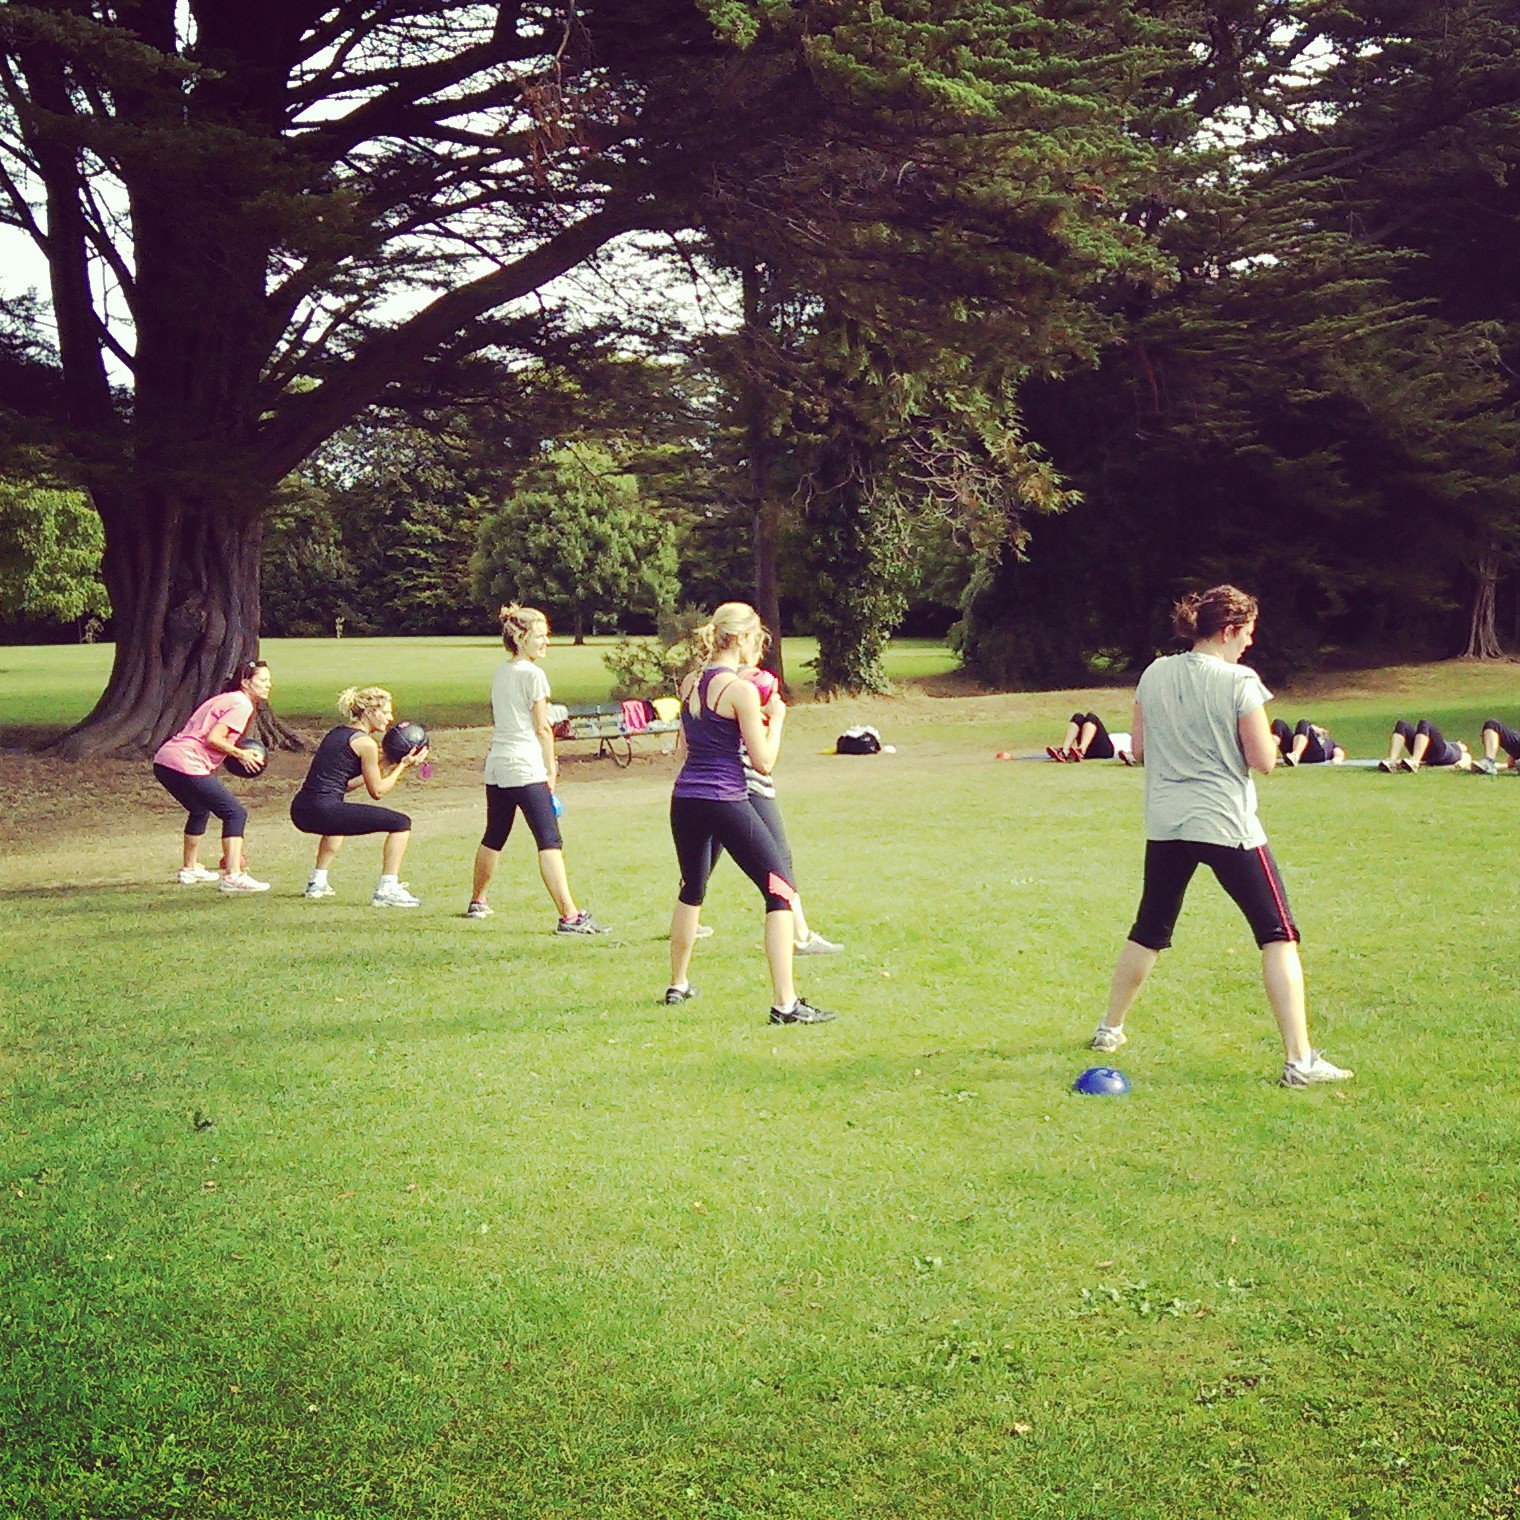 fitness training outdoors for women